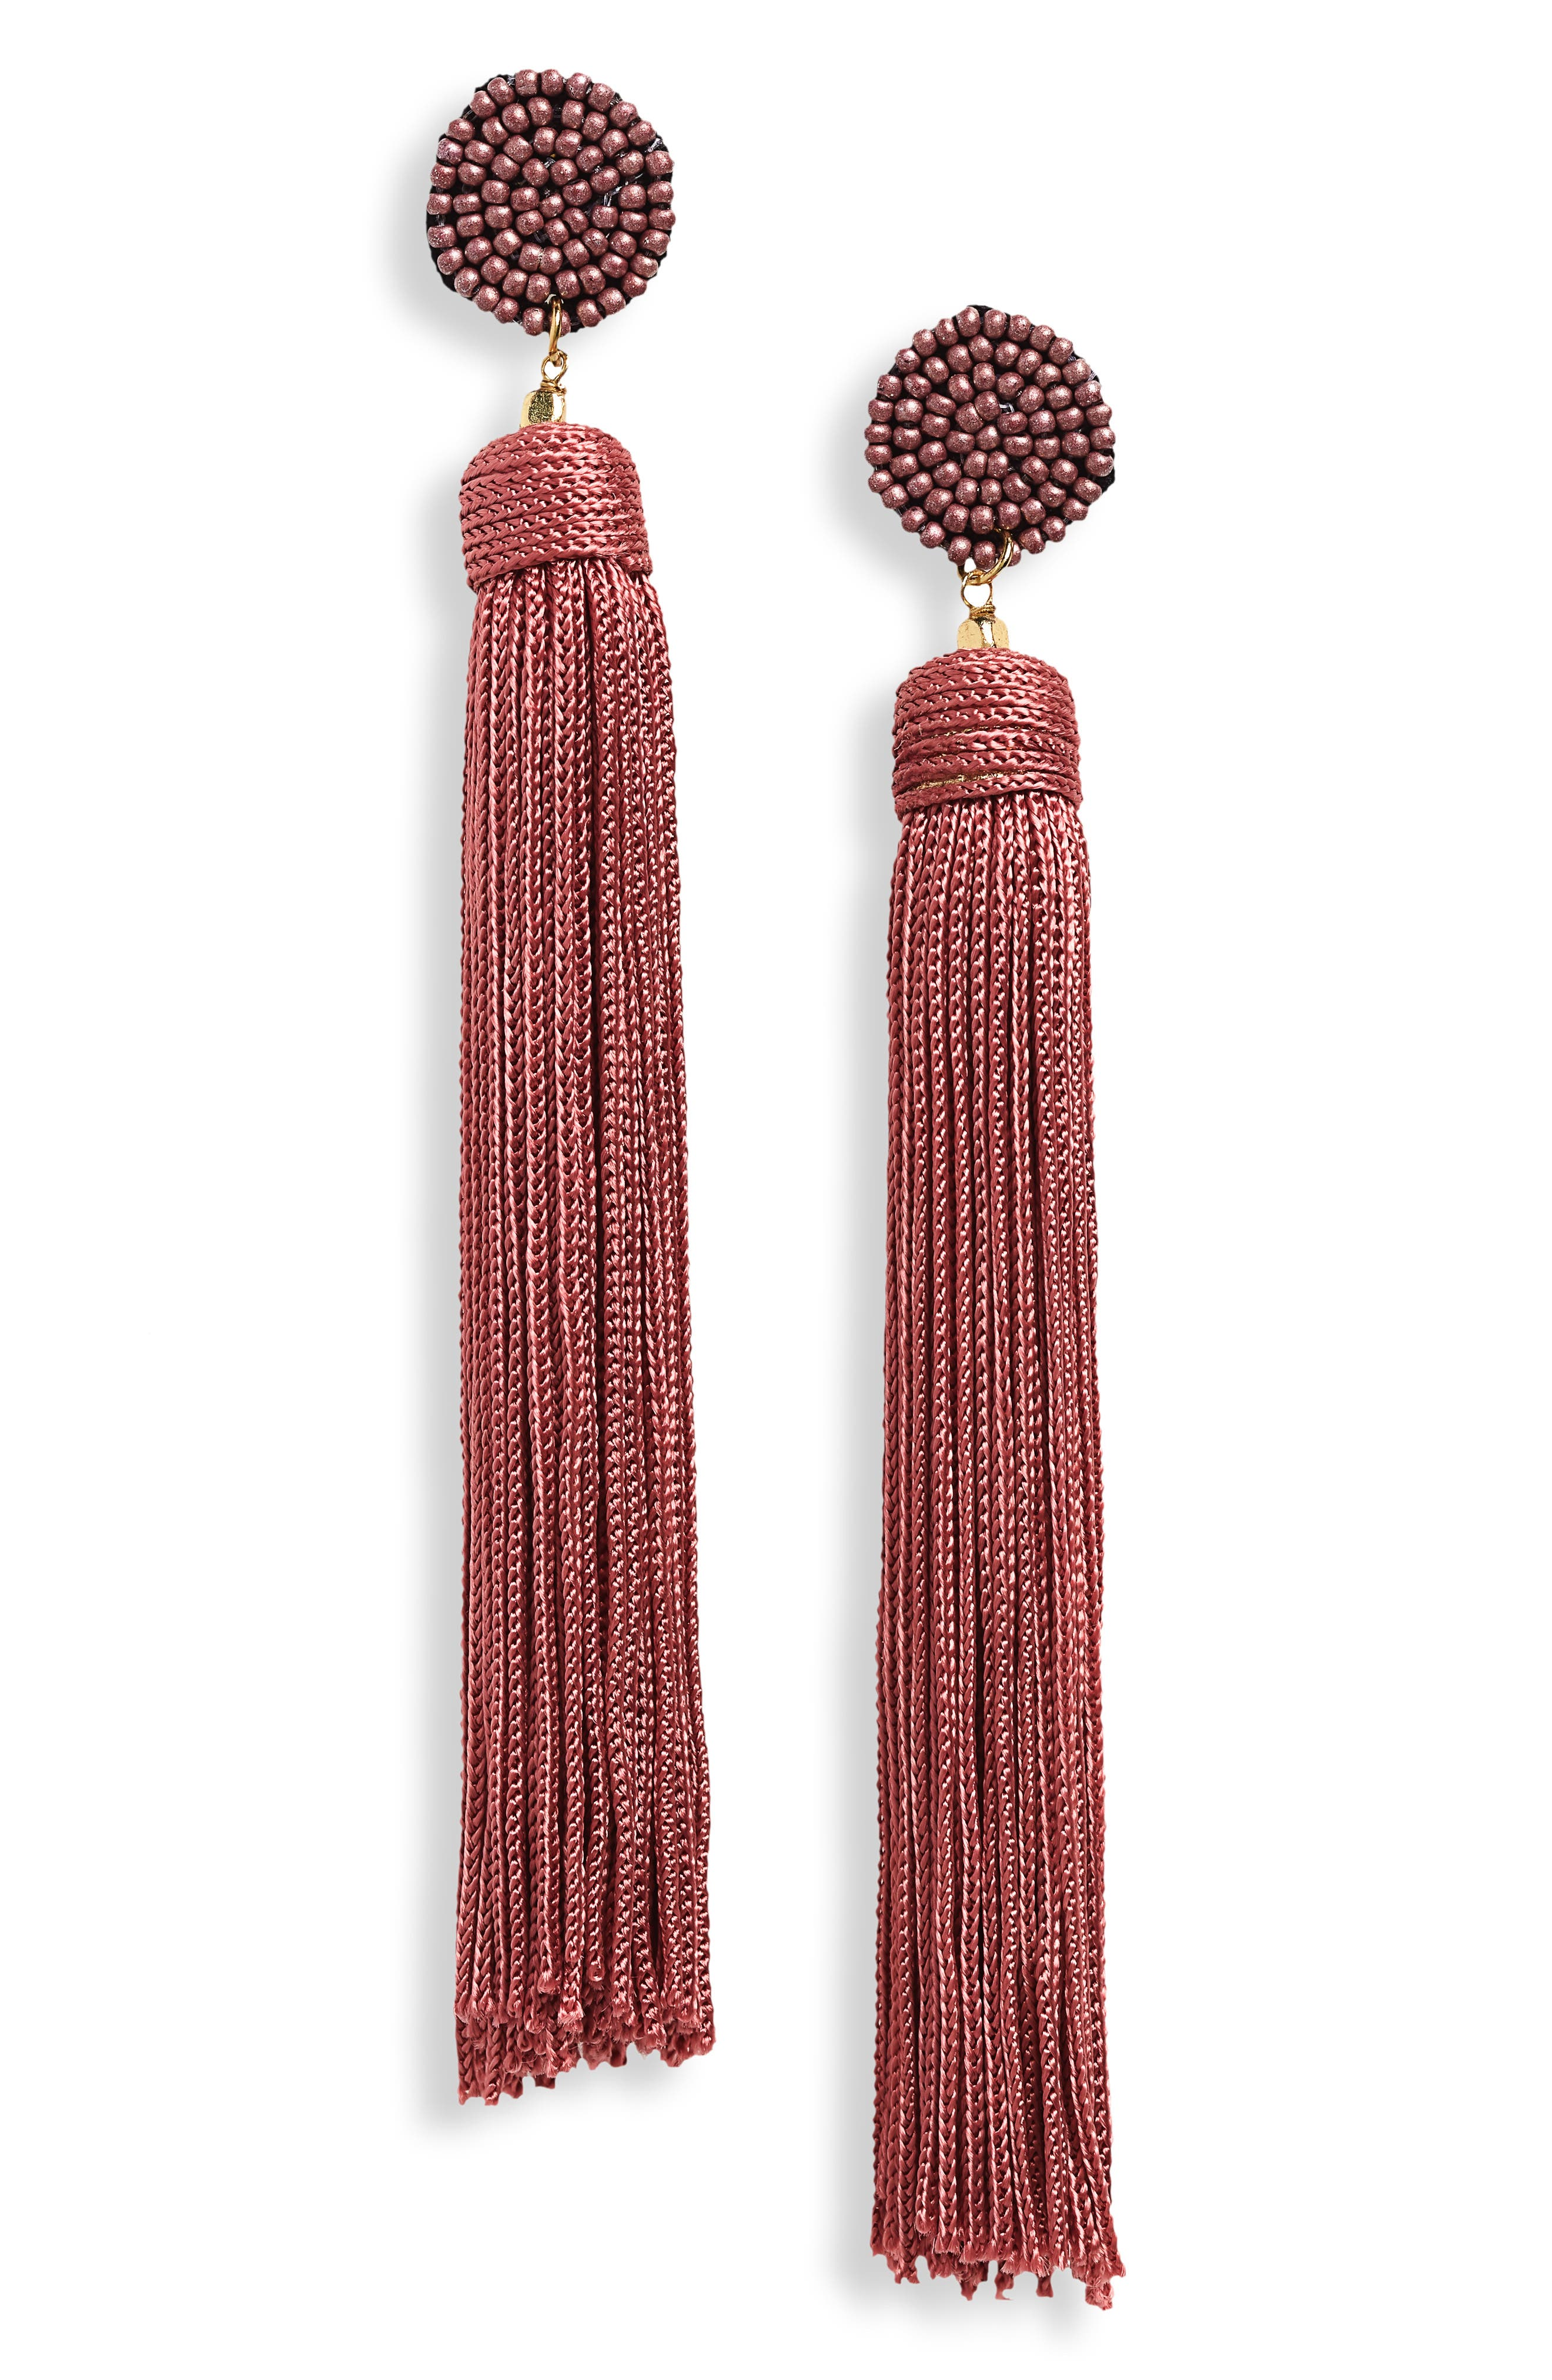 Nylon Tassel Earrings,                         Main,                         color, Dusty Rose